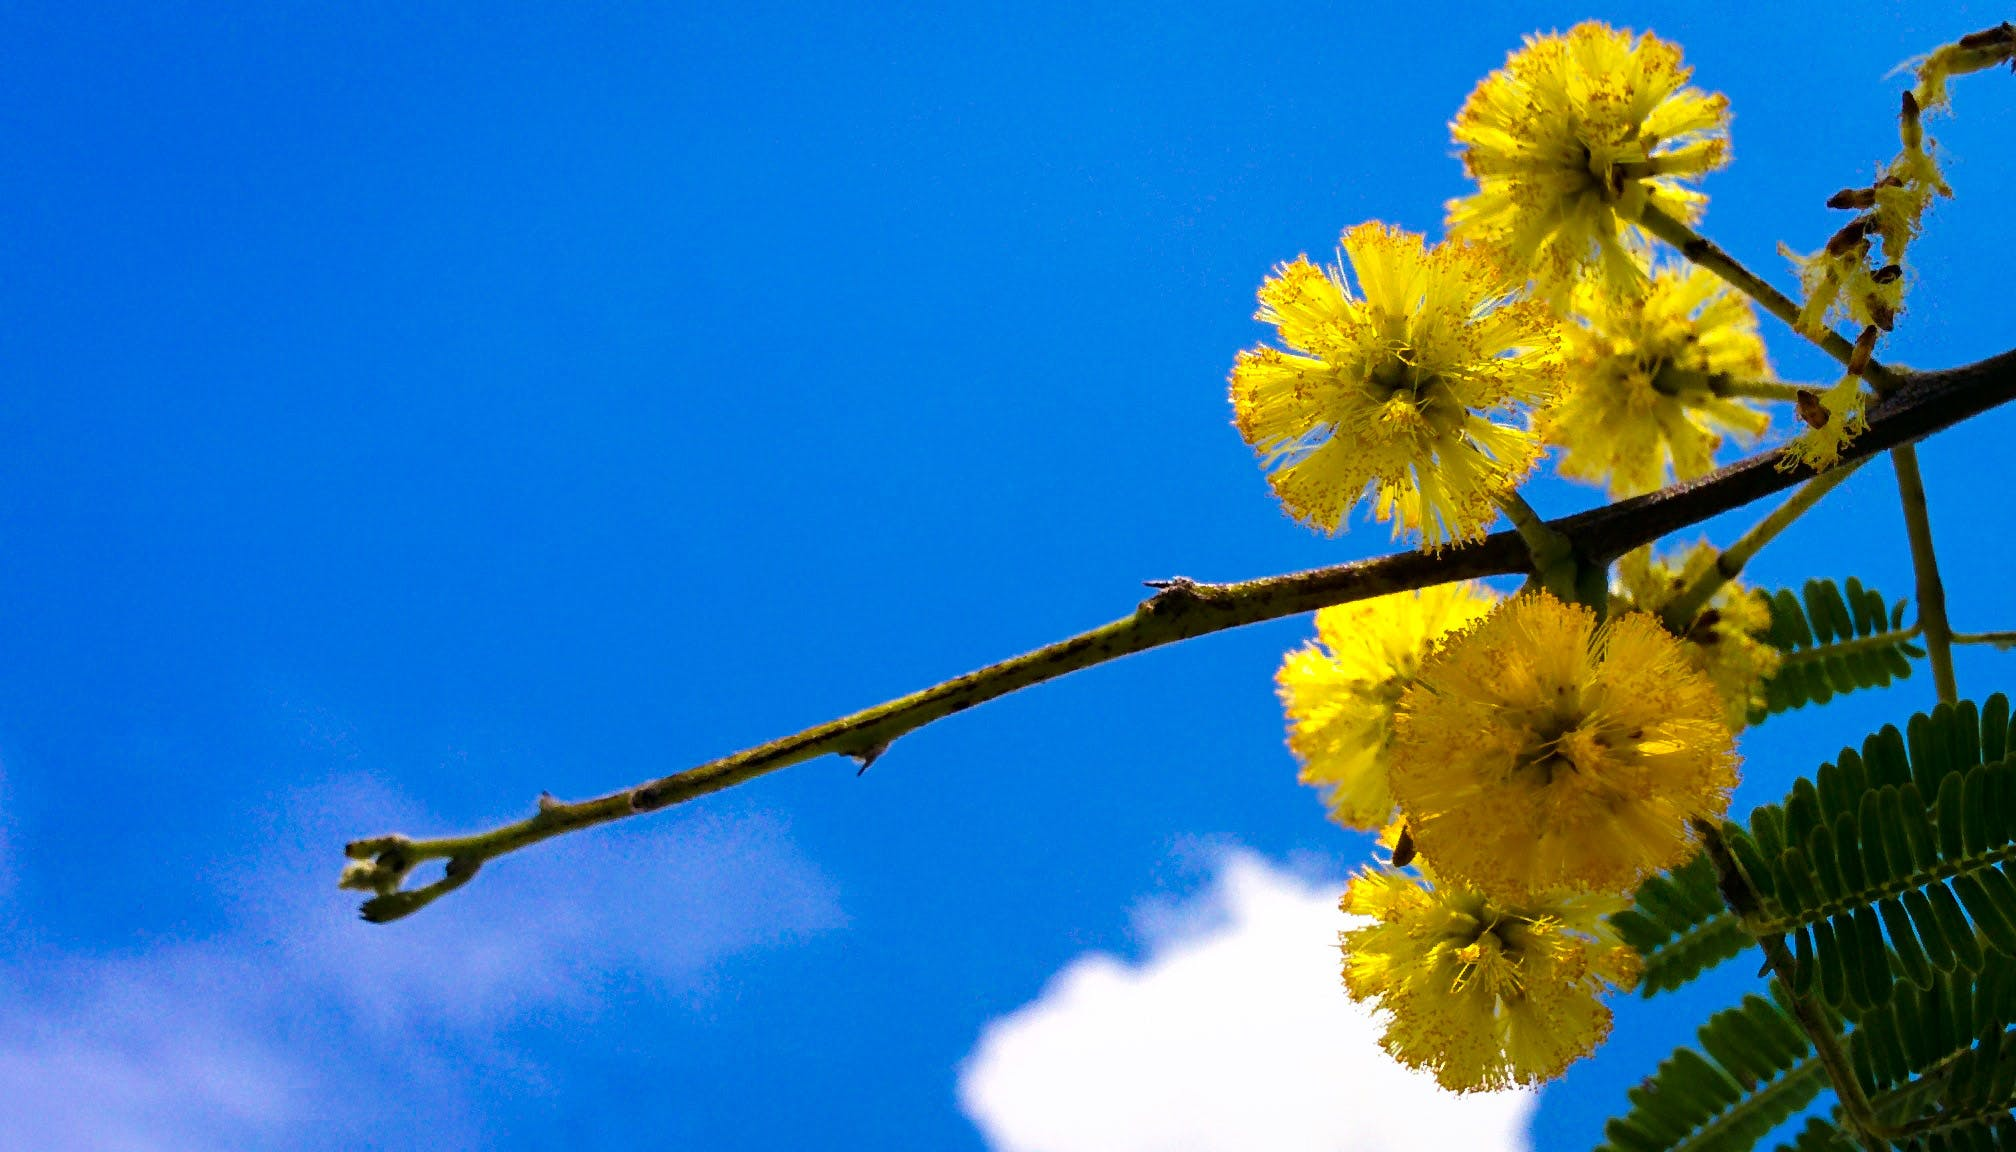 Free stock photo of blue sky, flower, garden, tree